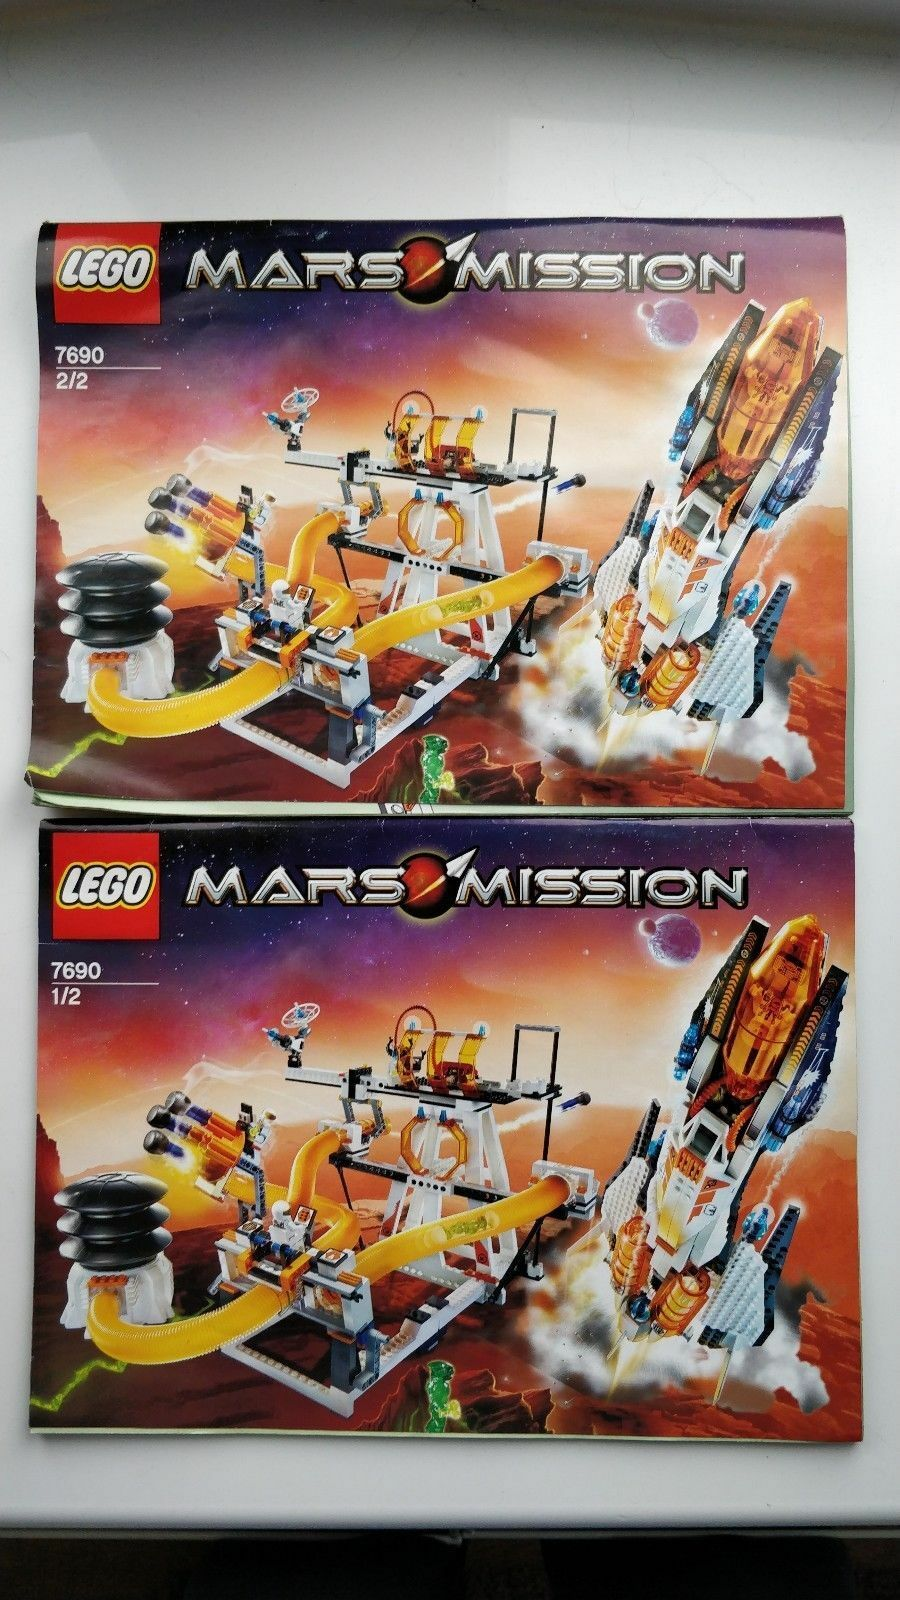 Lego Mars Mission 7690 mb-01 Command Center with Figures  100% Complete